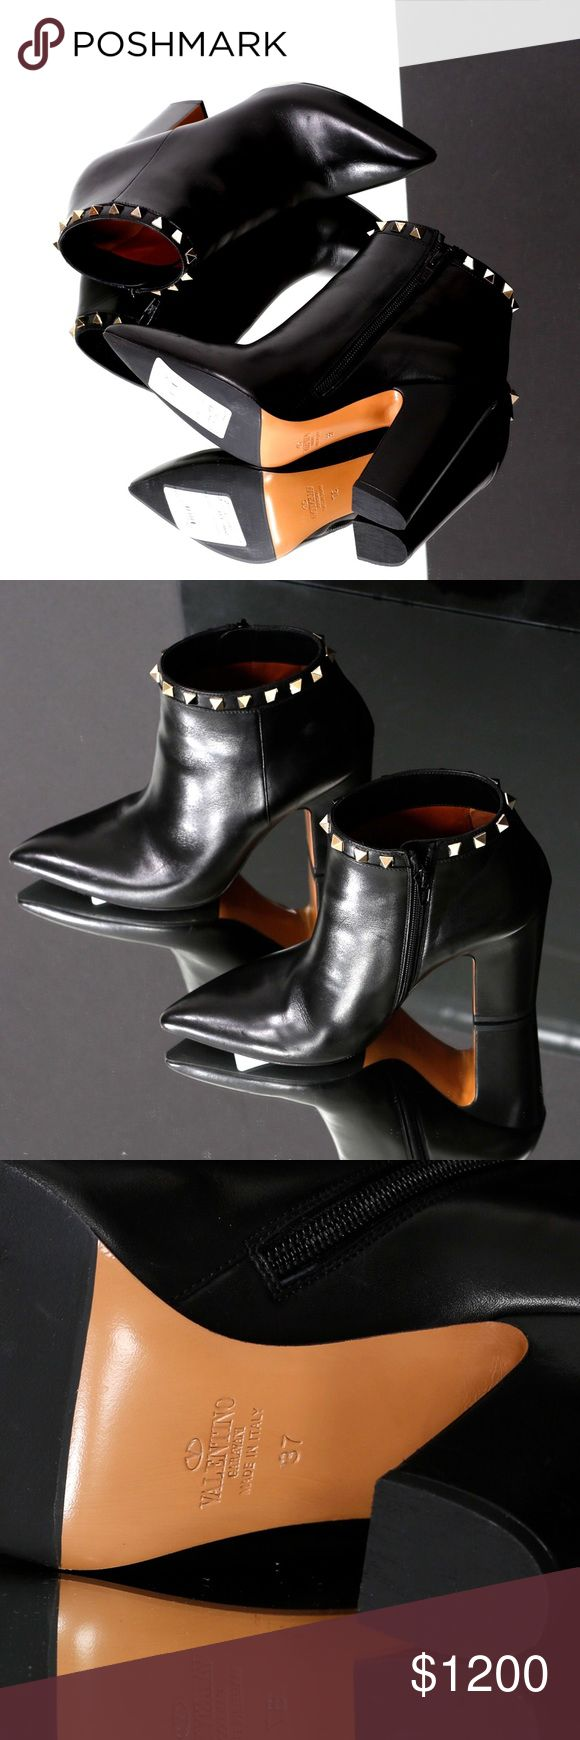 Valentino, Black Leather Ankle Booties 100% authentic Valentino. Size 37 (euro). NEVER WORN! The pictures in the listing are of the actual shoes for sale. Heel height: 3 3/4in. Super sleek, semi-matte leather bootie, features gold studs and a wide based heel. Hope you love them as much as we do! -xo Valentino Shoes Ankle Boots & Booties